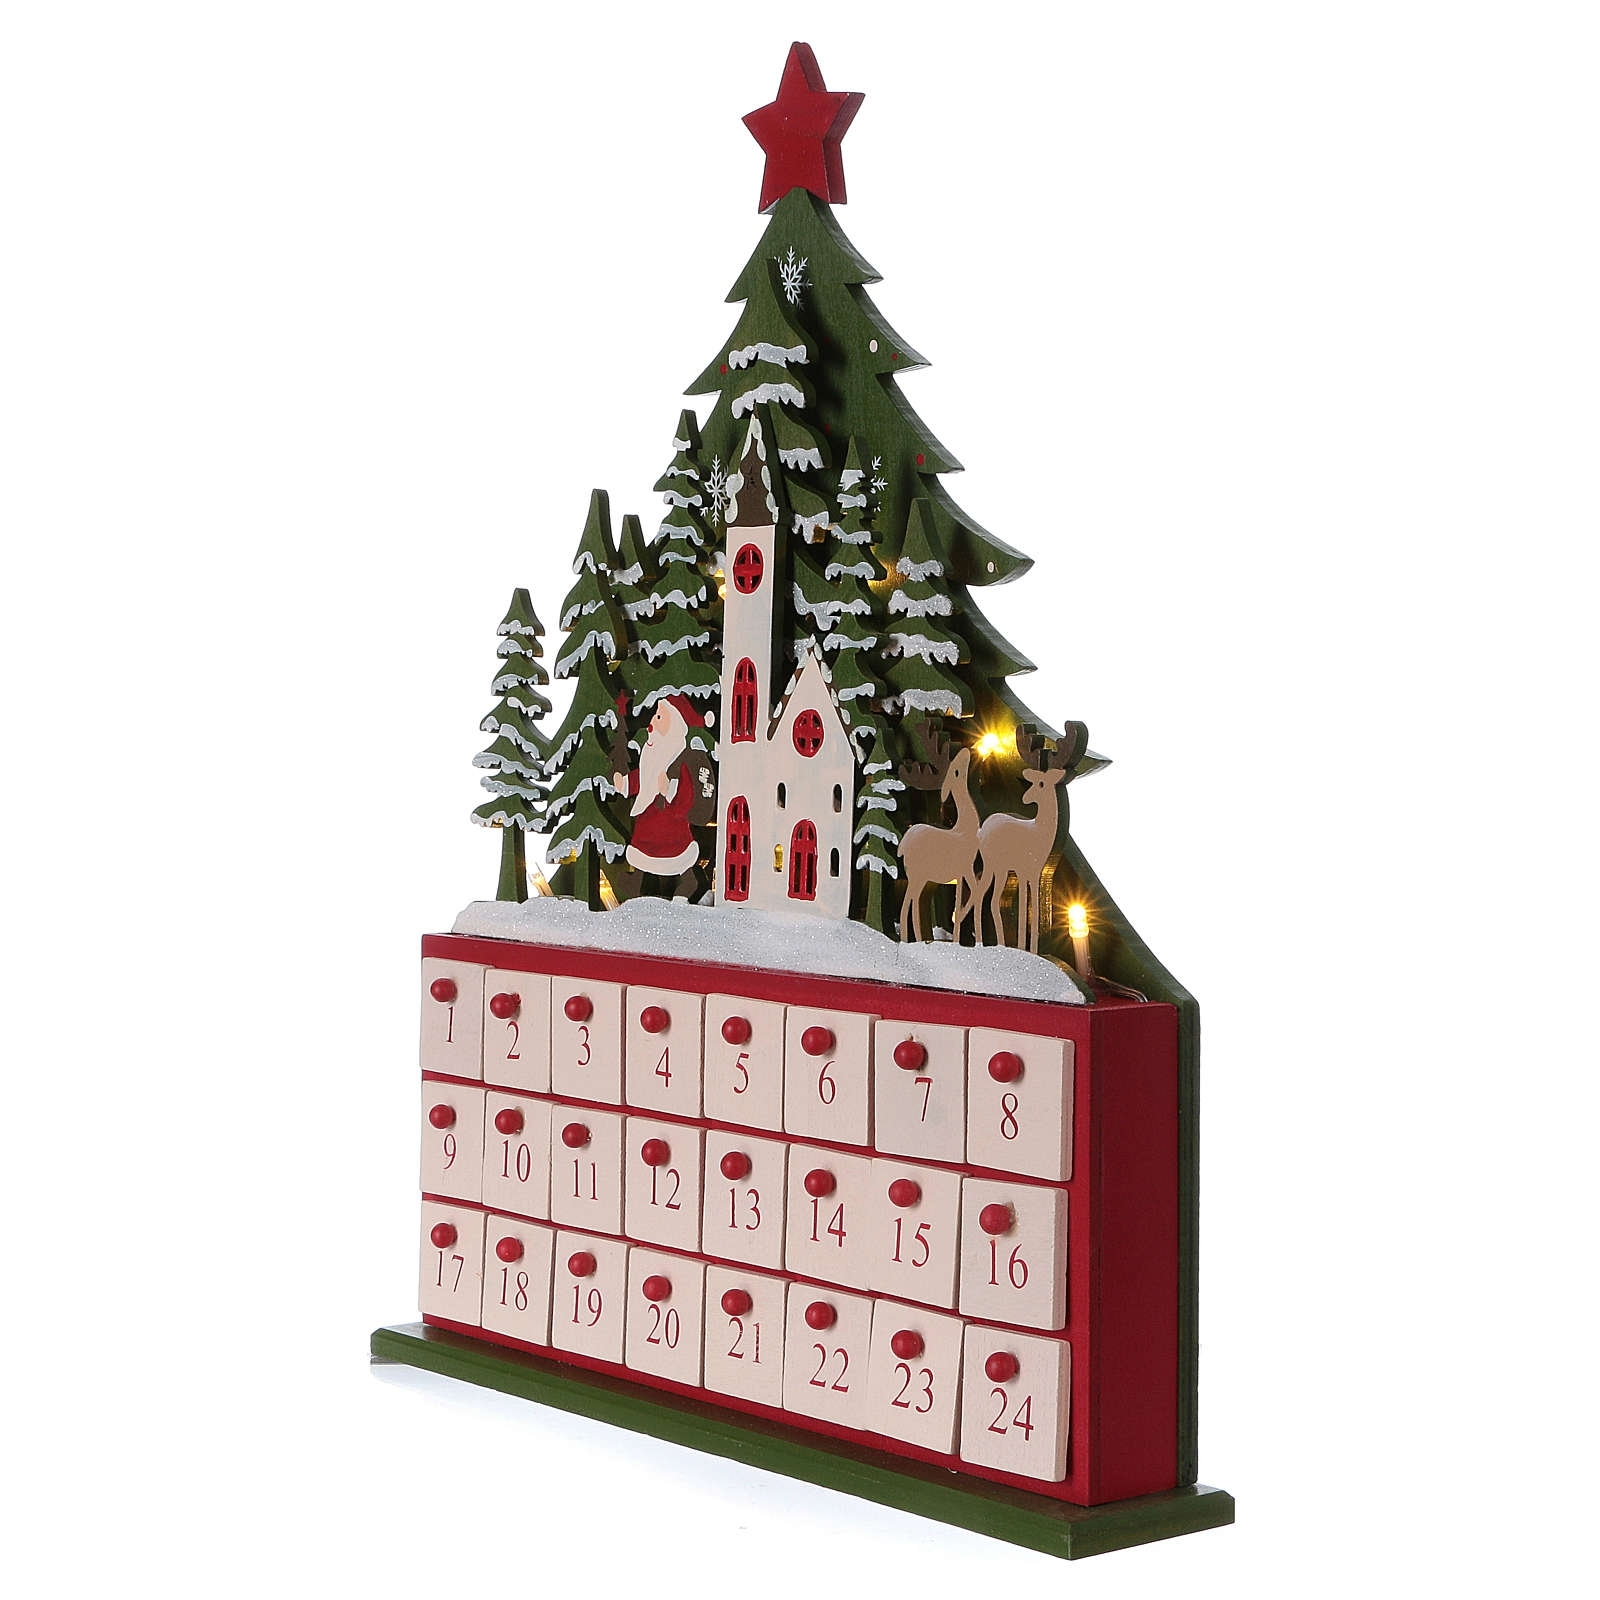 Wooden Advent Calendar Led With Small Boxes And Church 40 Cm for Wooden Advent Calendar With Lights And Boxes